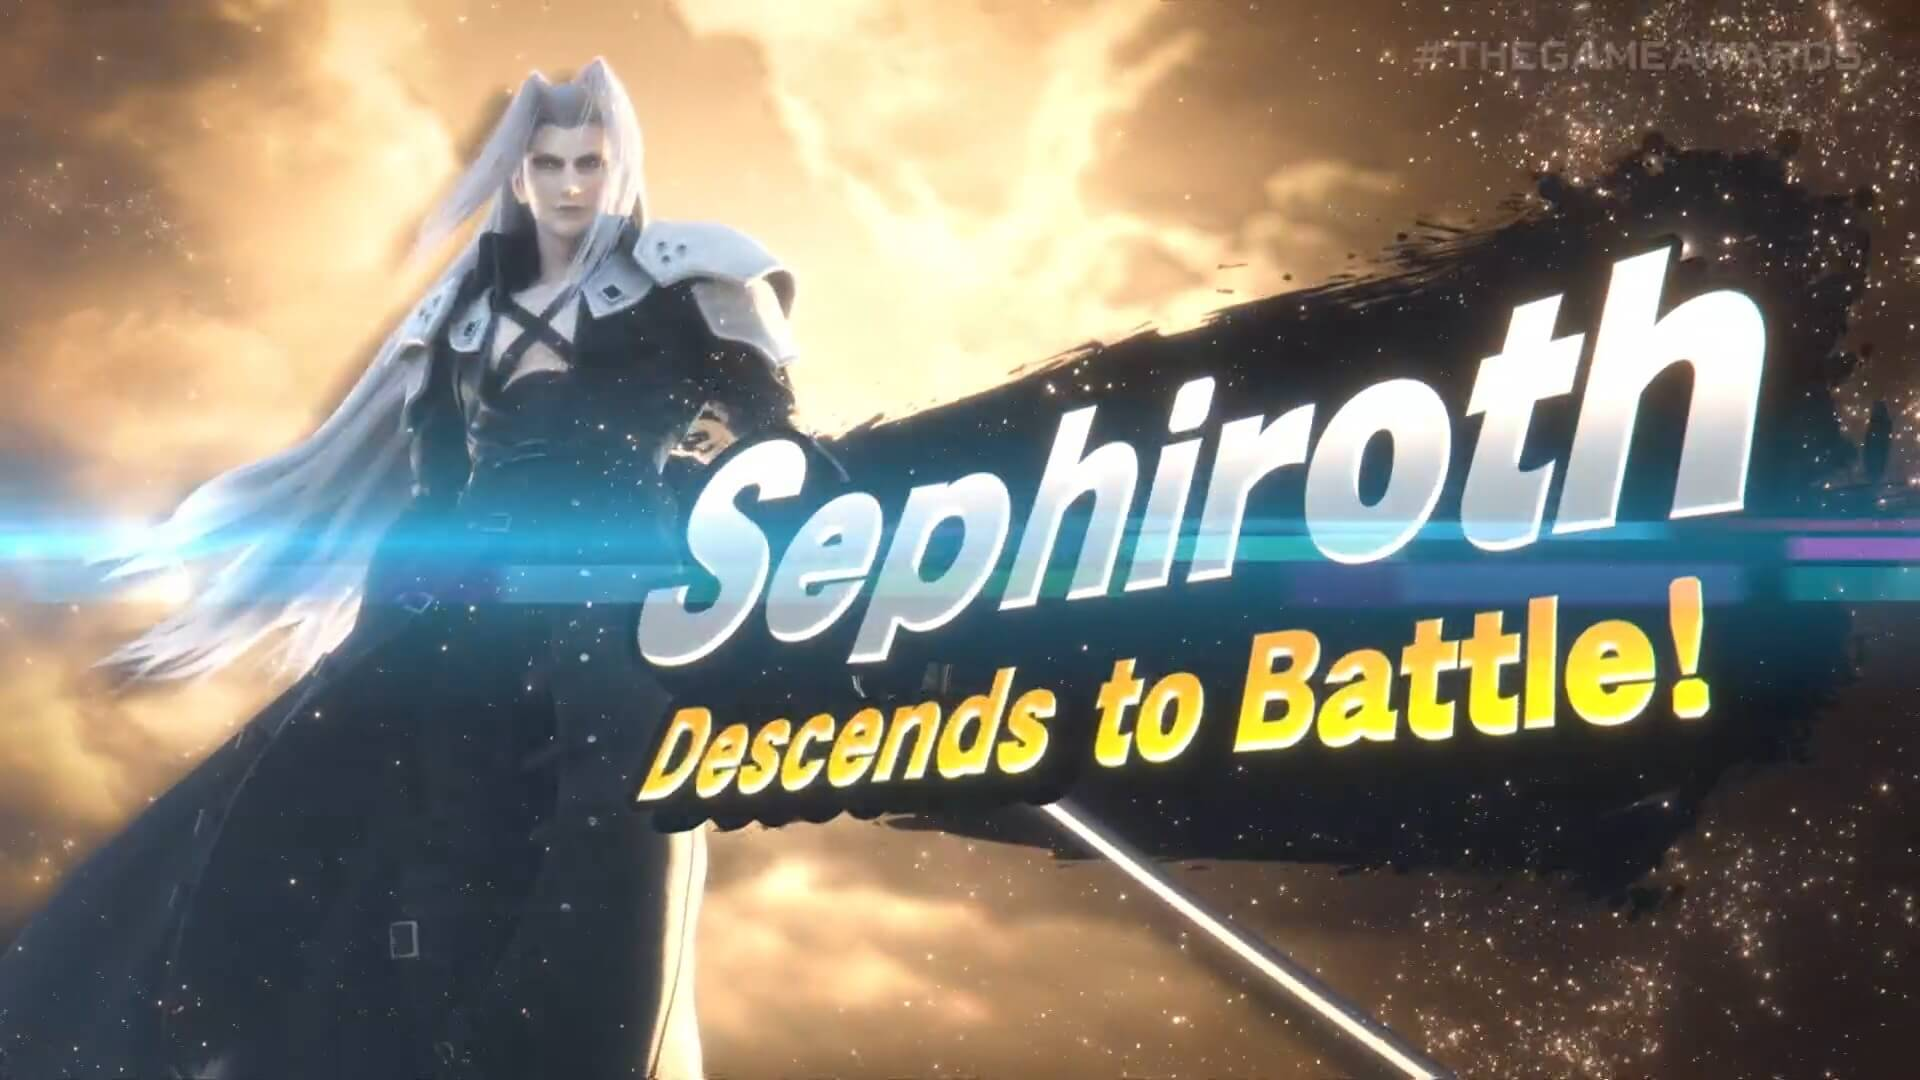 Sephiroth announced as the latest Super Smash Bros. Ultimate Character